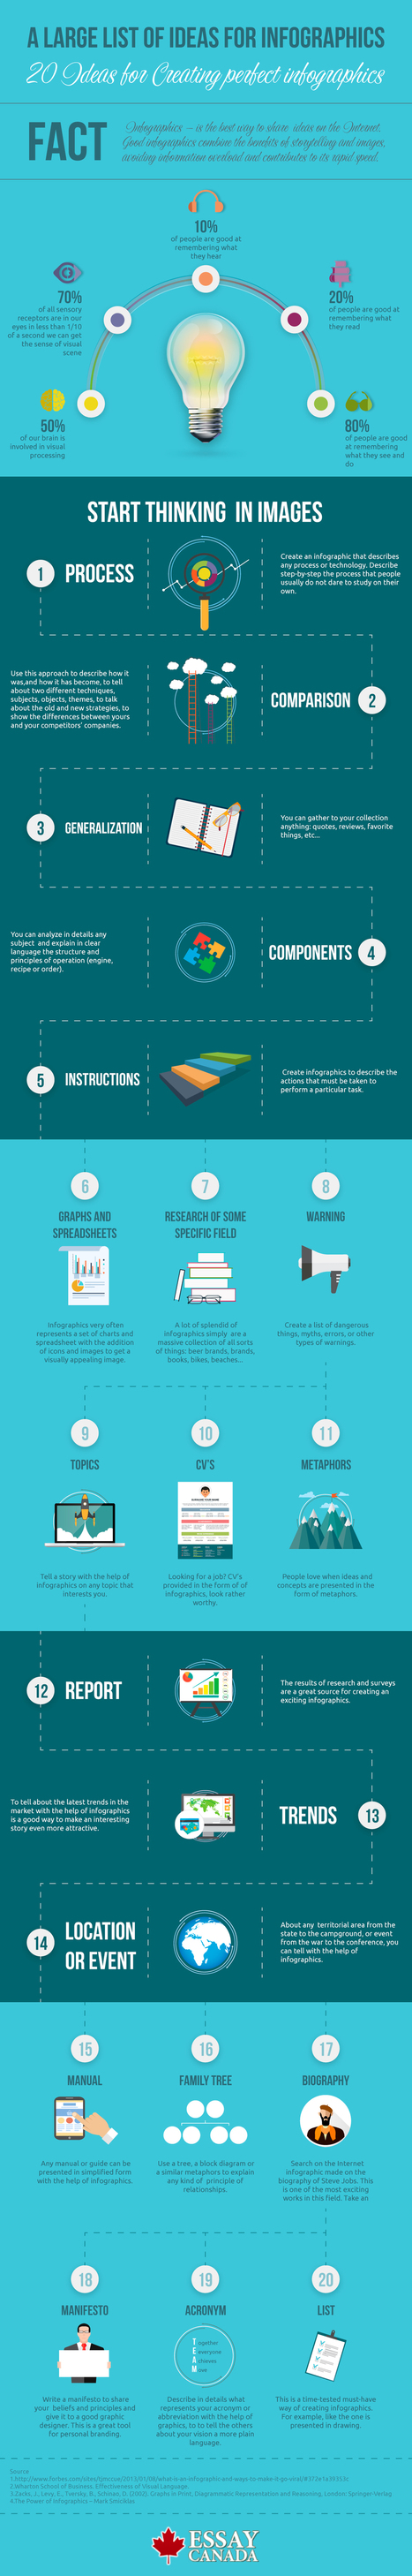 20 Ideas for Creating Perfect Infographics Infographic - via @eLearngraphic | Linguagem Virtual | Scoop.it